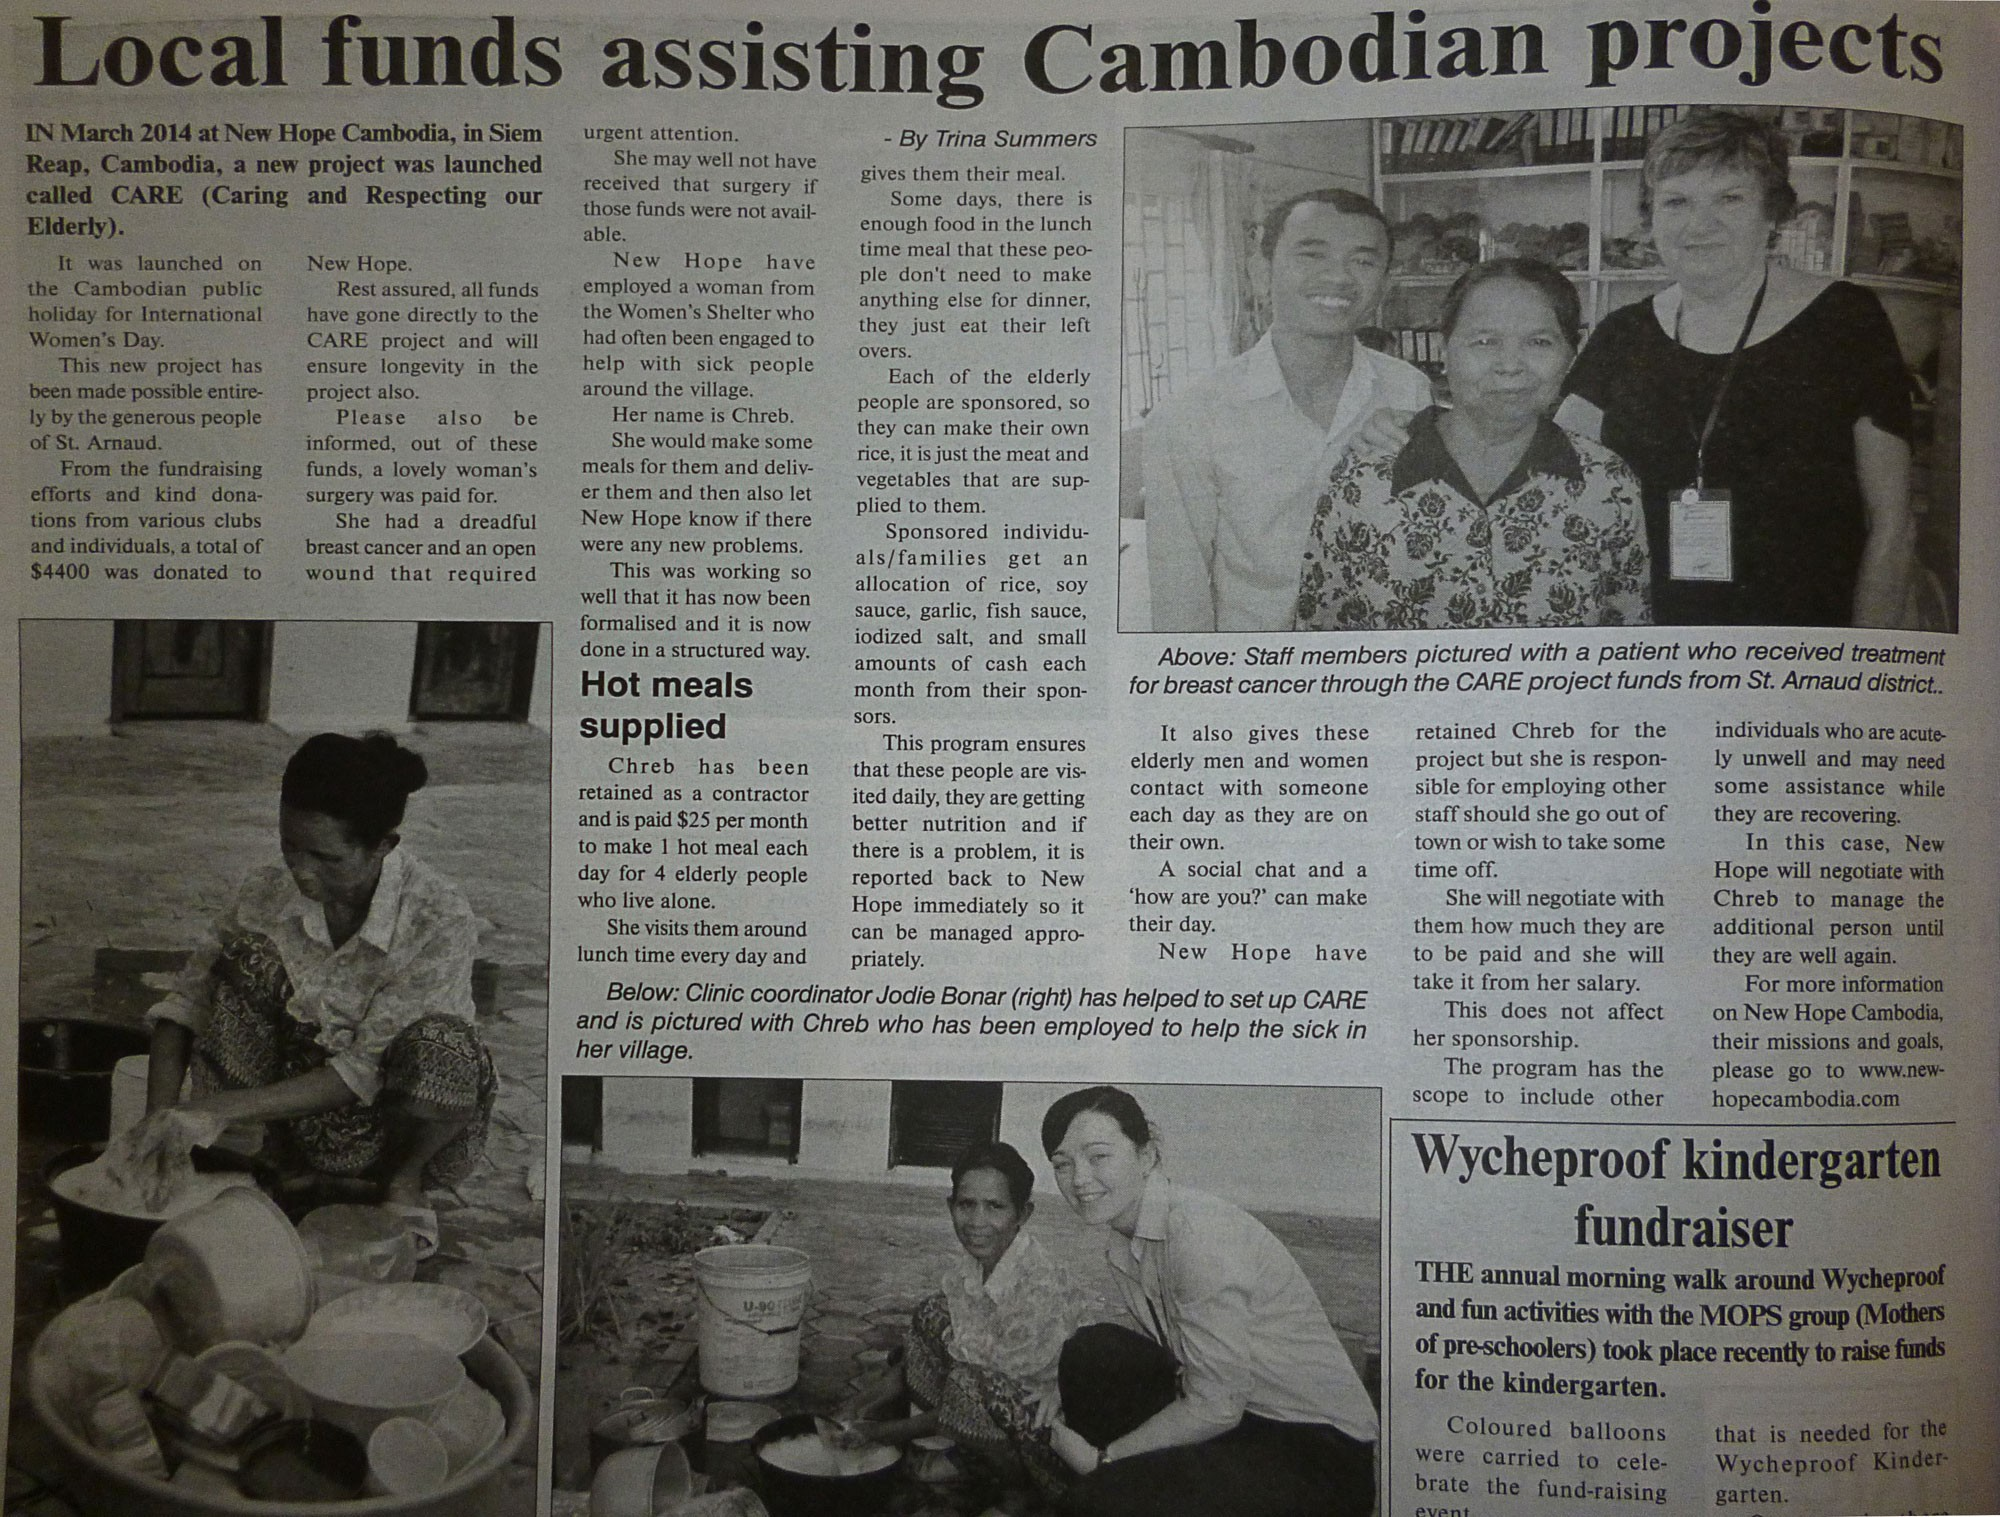 Local funds assisting Cambodian projects